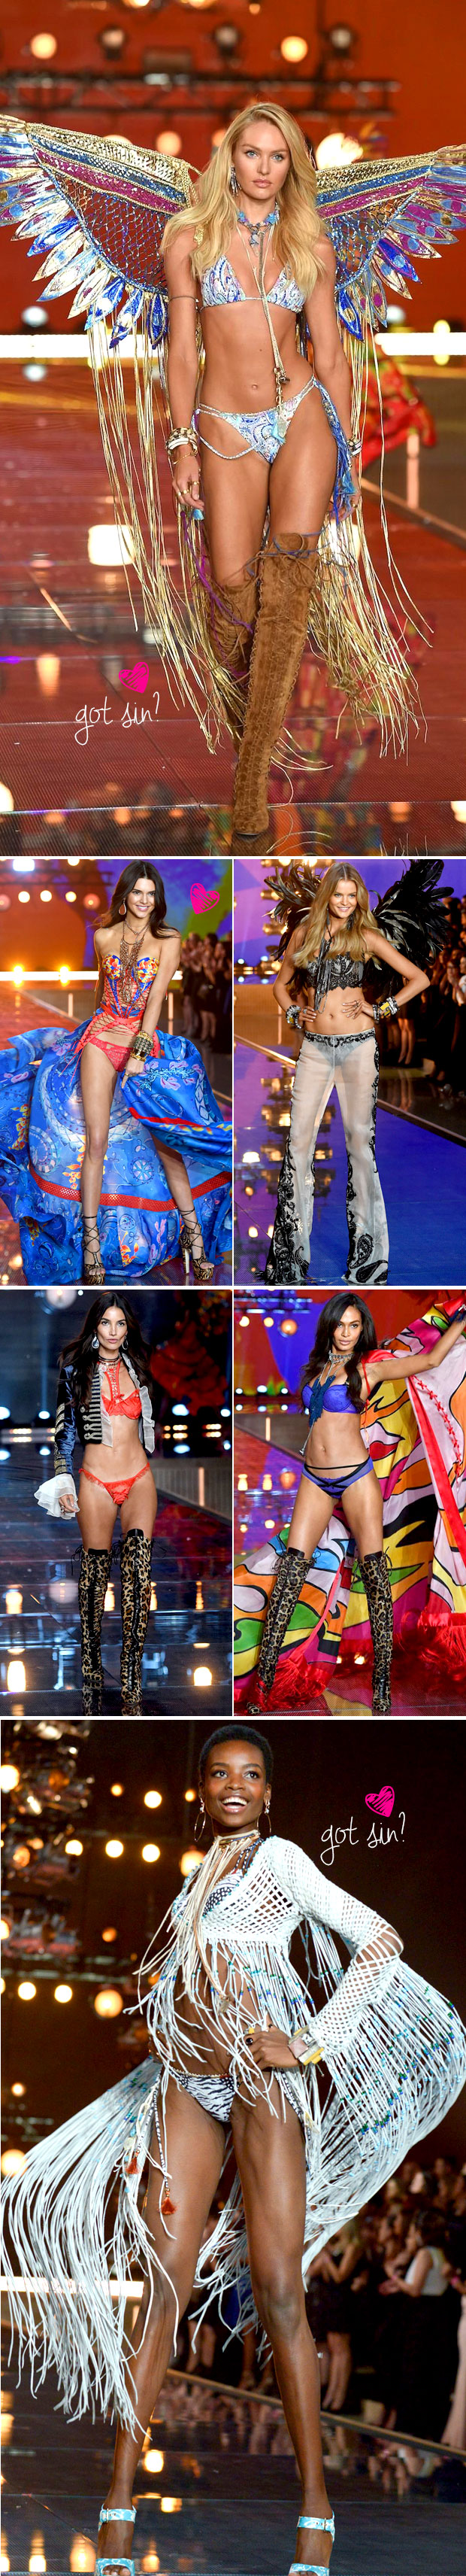 victorias-secret-fashion-show-todas-as-fotos-blog-got-sin-60s-boho-angels-candice-swanepoel-lily-aldridge-maria-borges-kendall-jenner